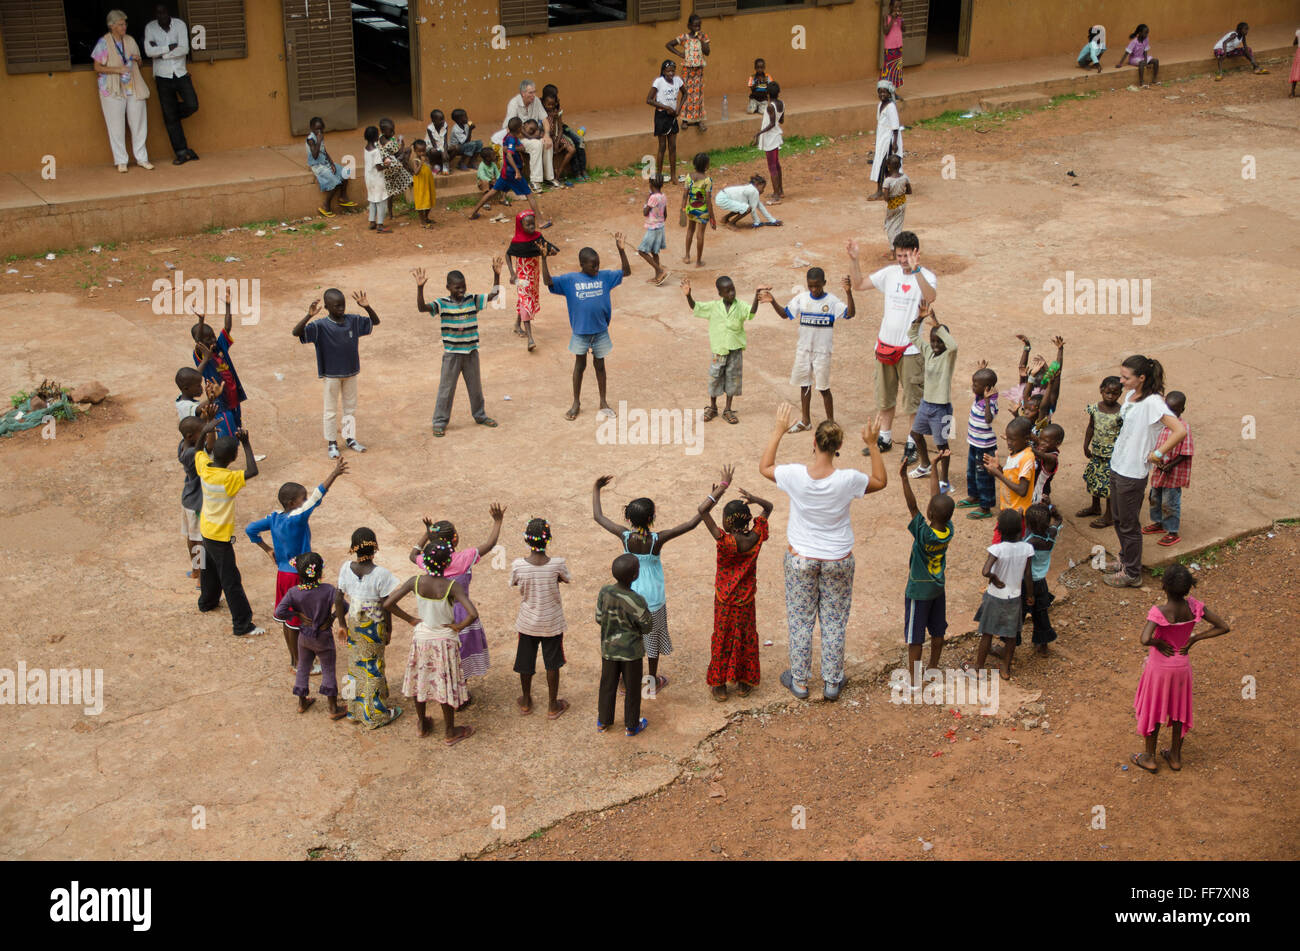 Mali, Africa - Group of black children having fun in a circle in Africa Stock Photo